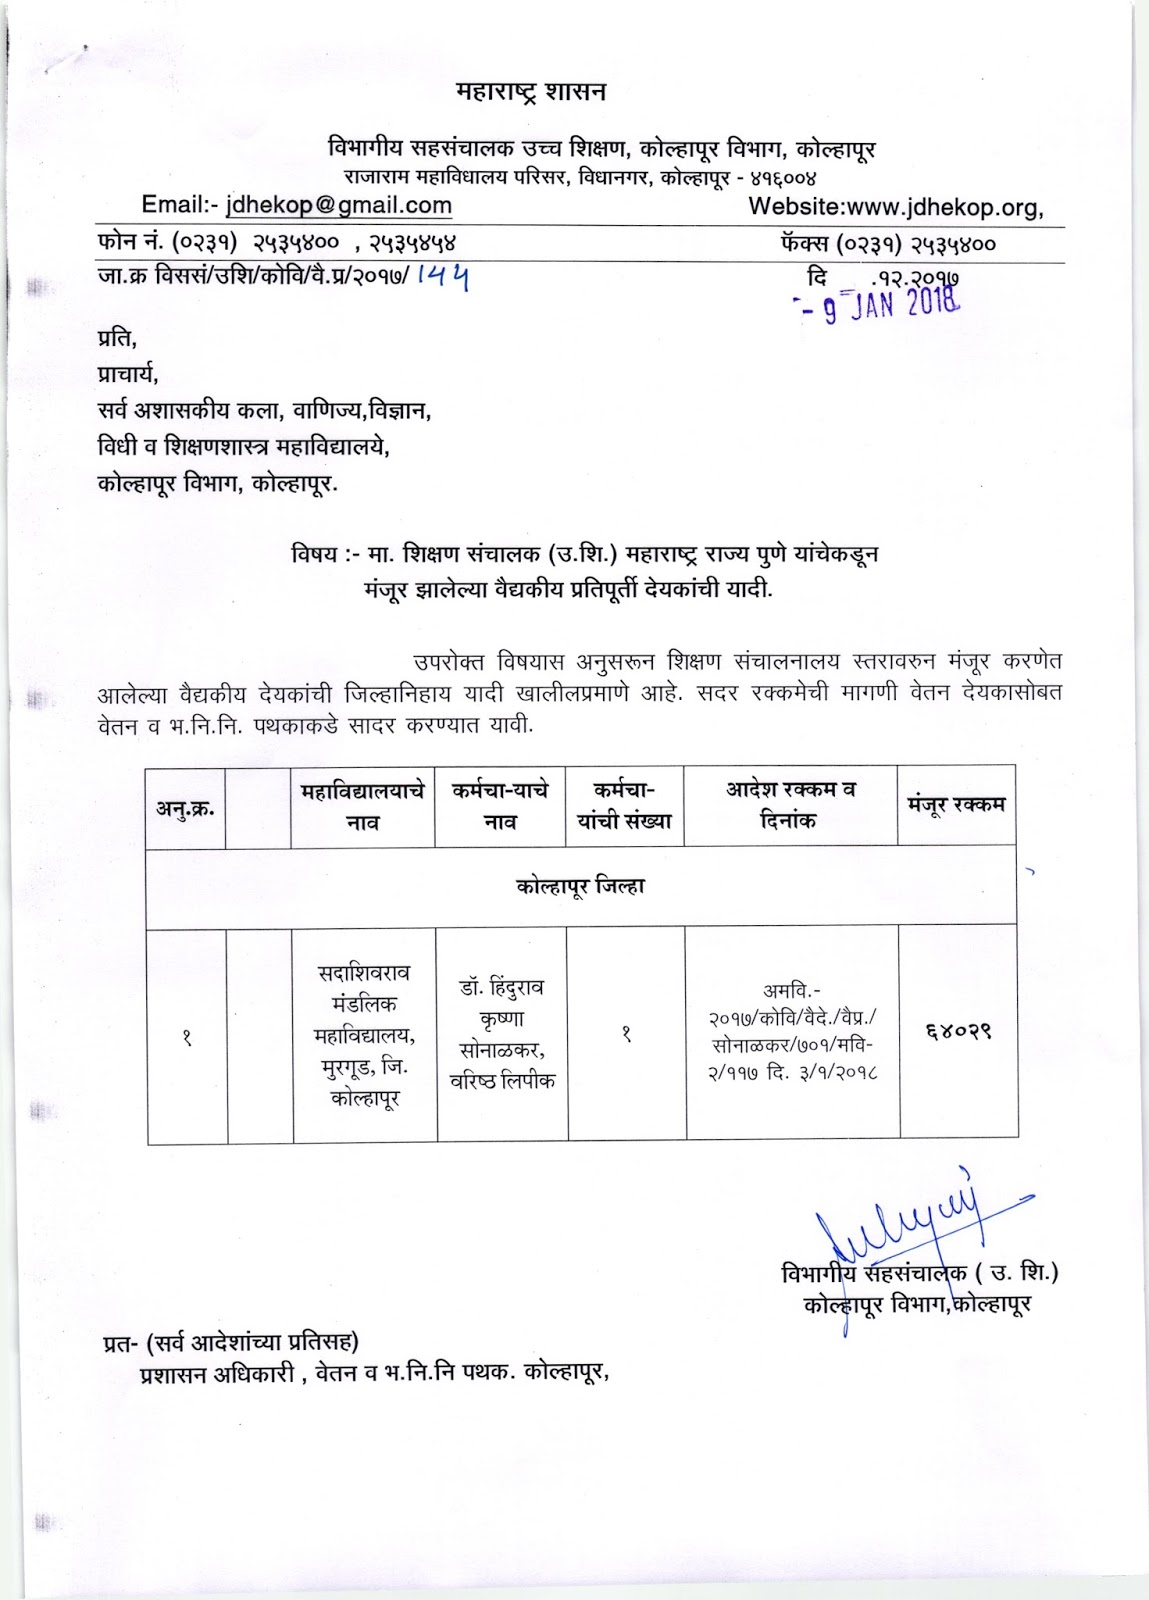 sanction medical bill list joint director higher education kolhapur